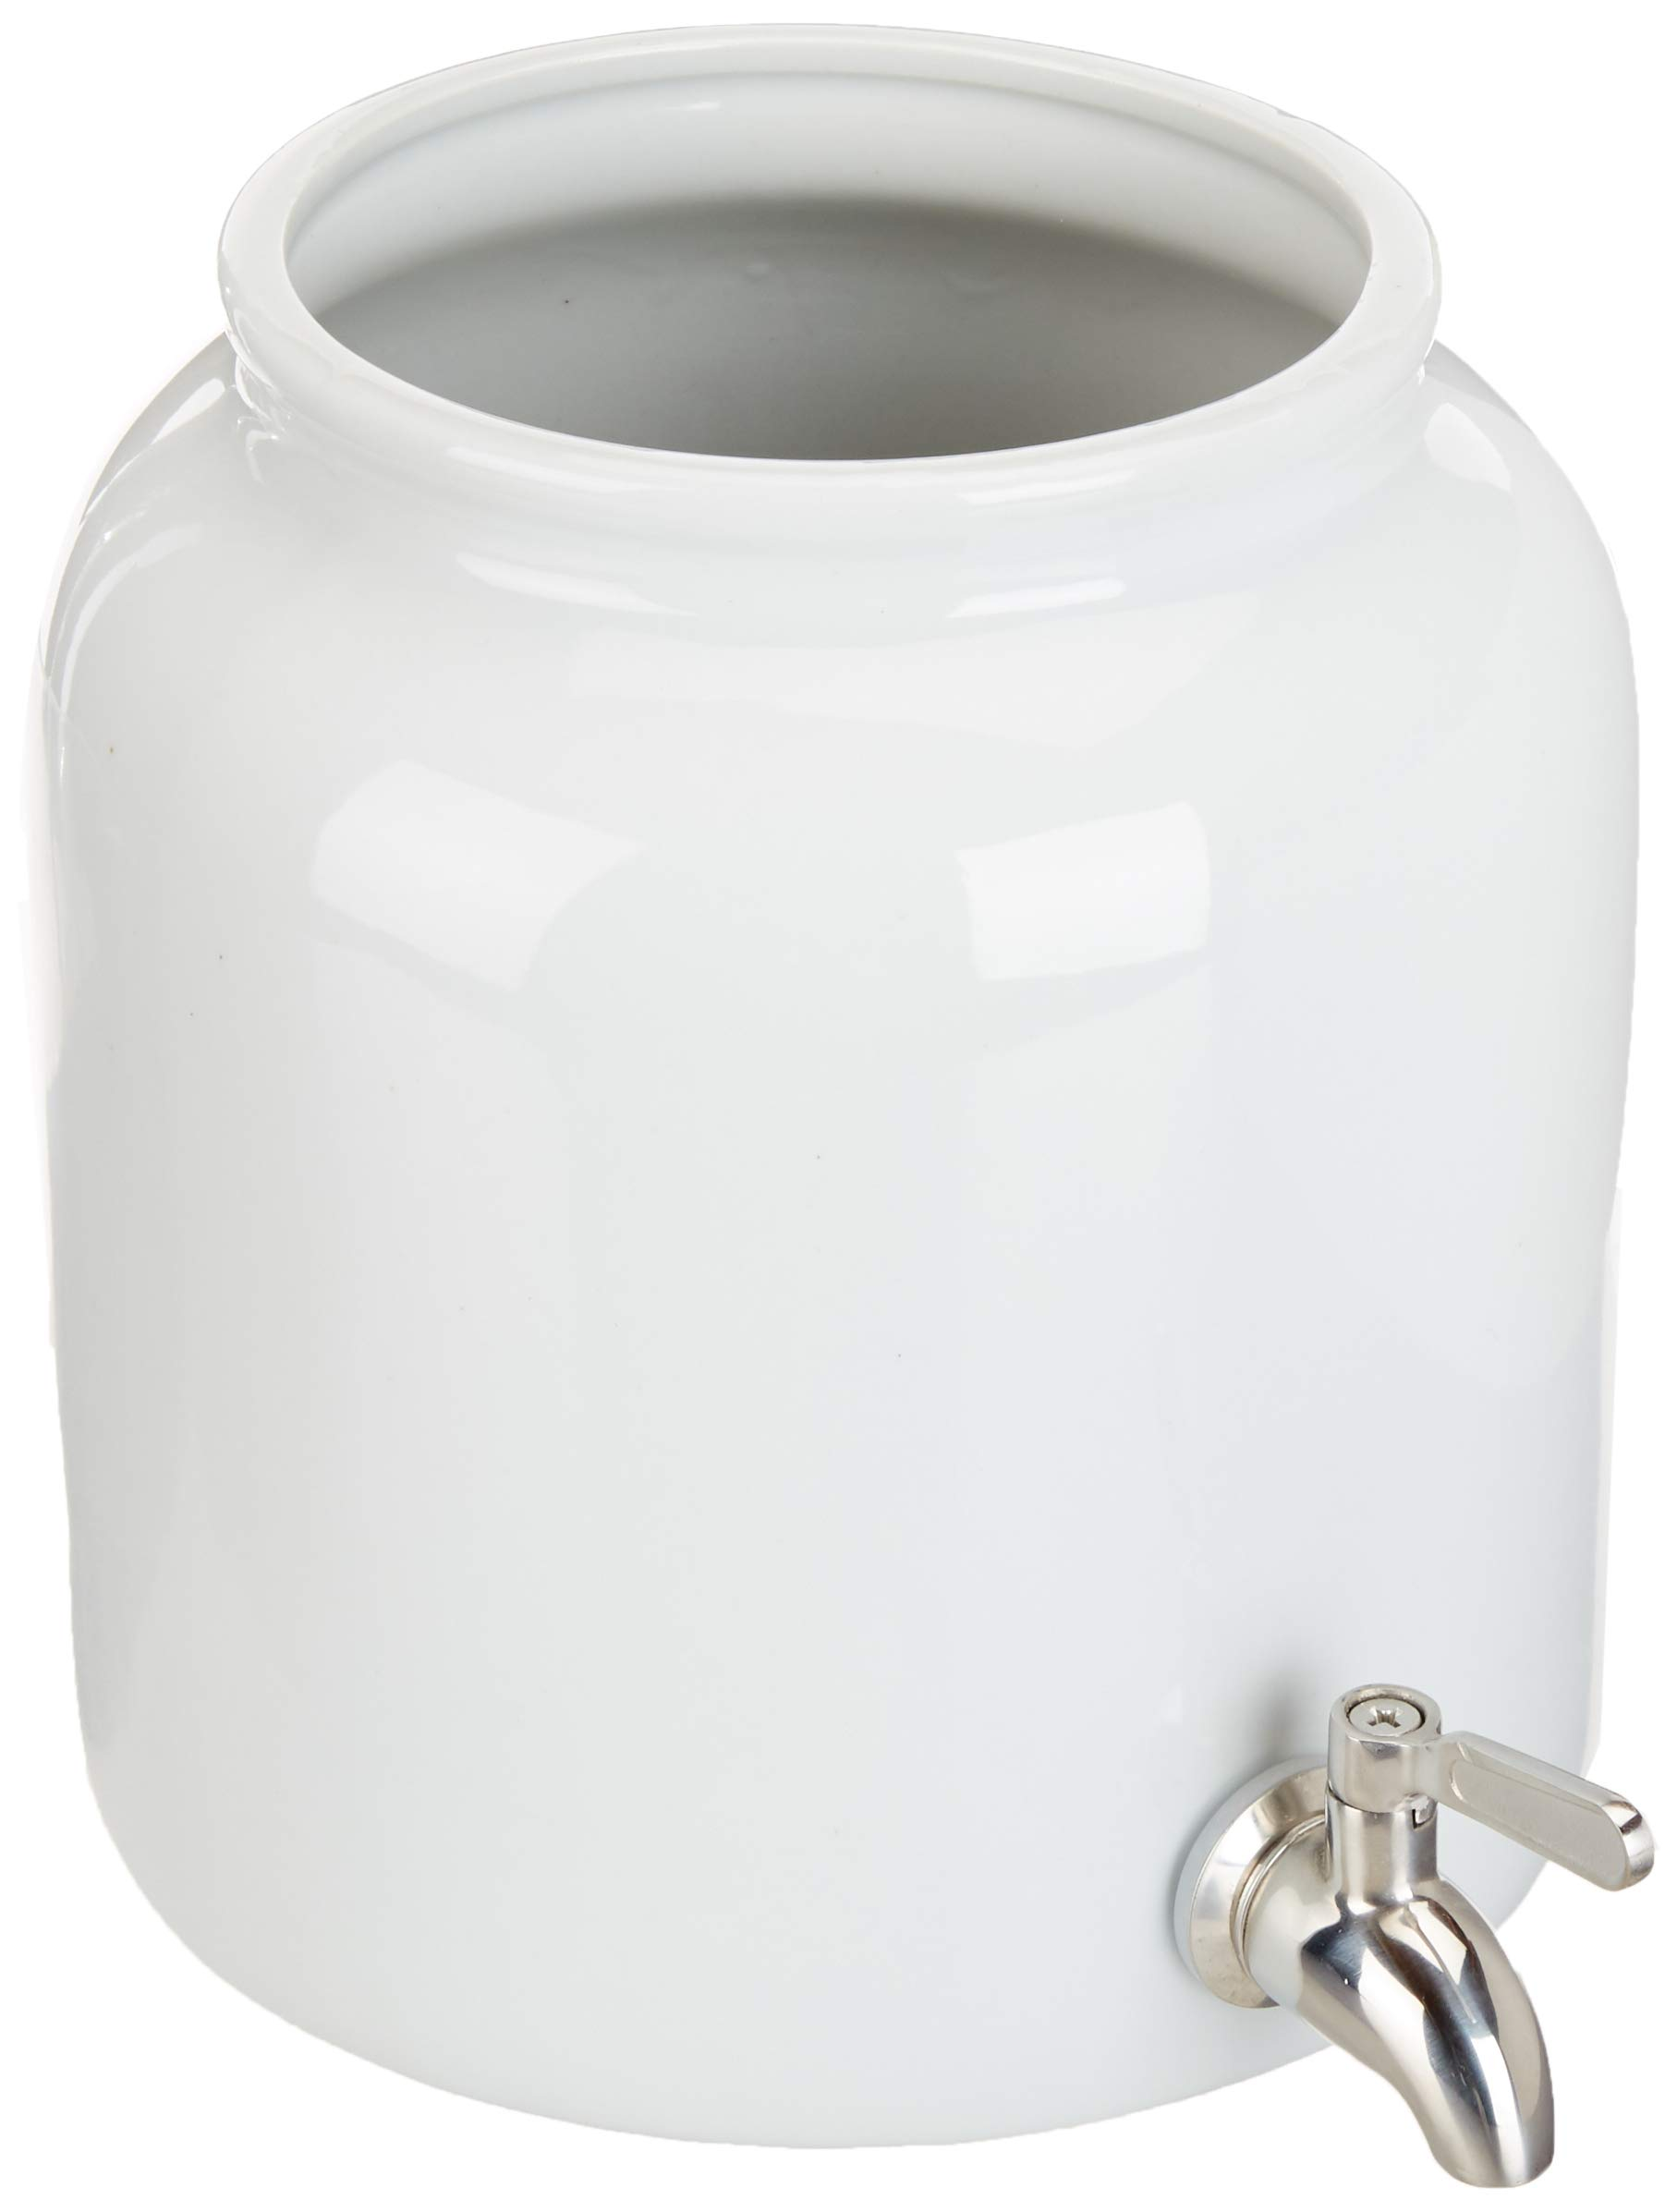 Continuous Brew Kombucha Jar with Stainless Steel Spigot, 5 Liter (1.3 Gallon) Ceramic Kombucha Brew Vessel for Continuous Kombucha Batches with Cotton Cloth and Rubber Band (Natural White)